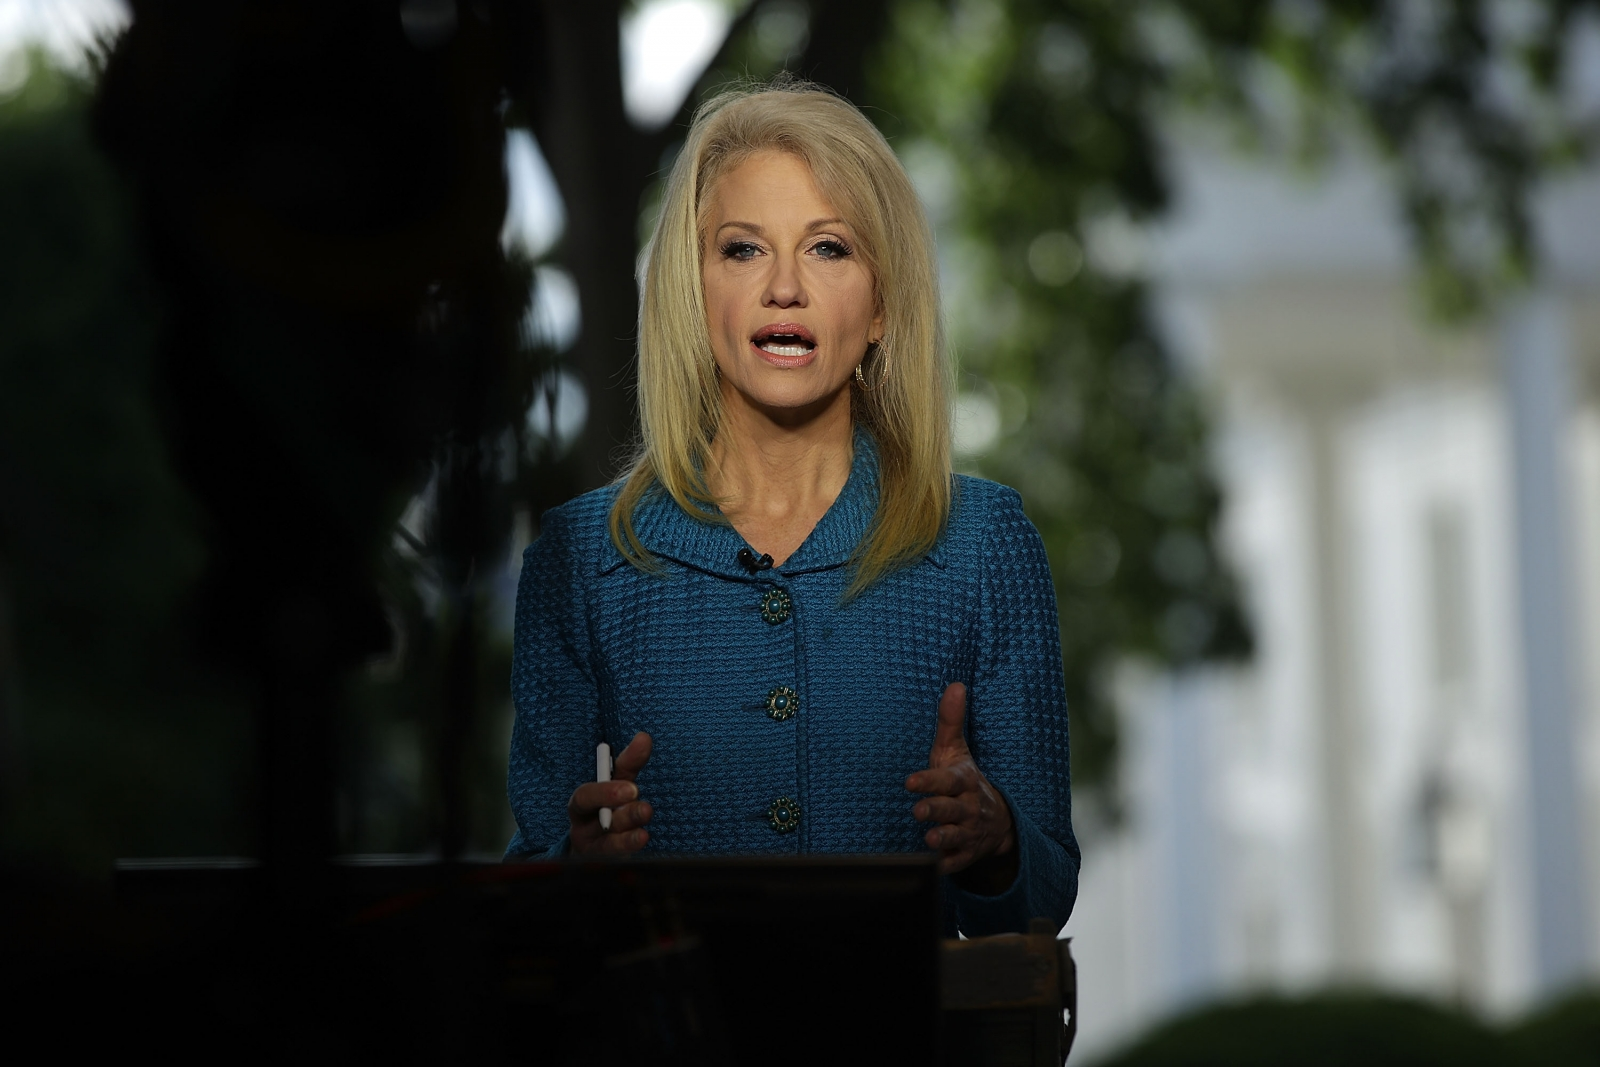 Kellyanne Conway's Husband Breaks Silence And Condemns Trump's Twitter Habits